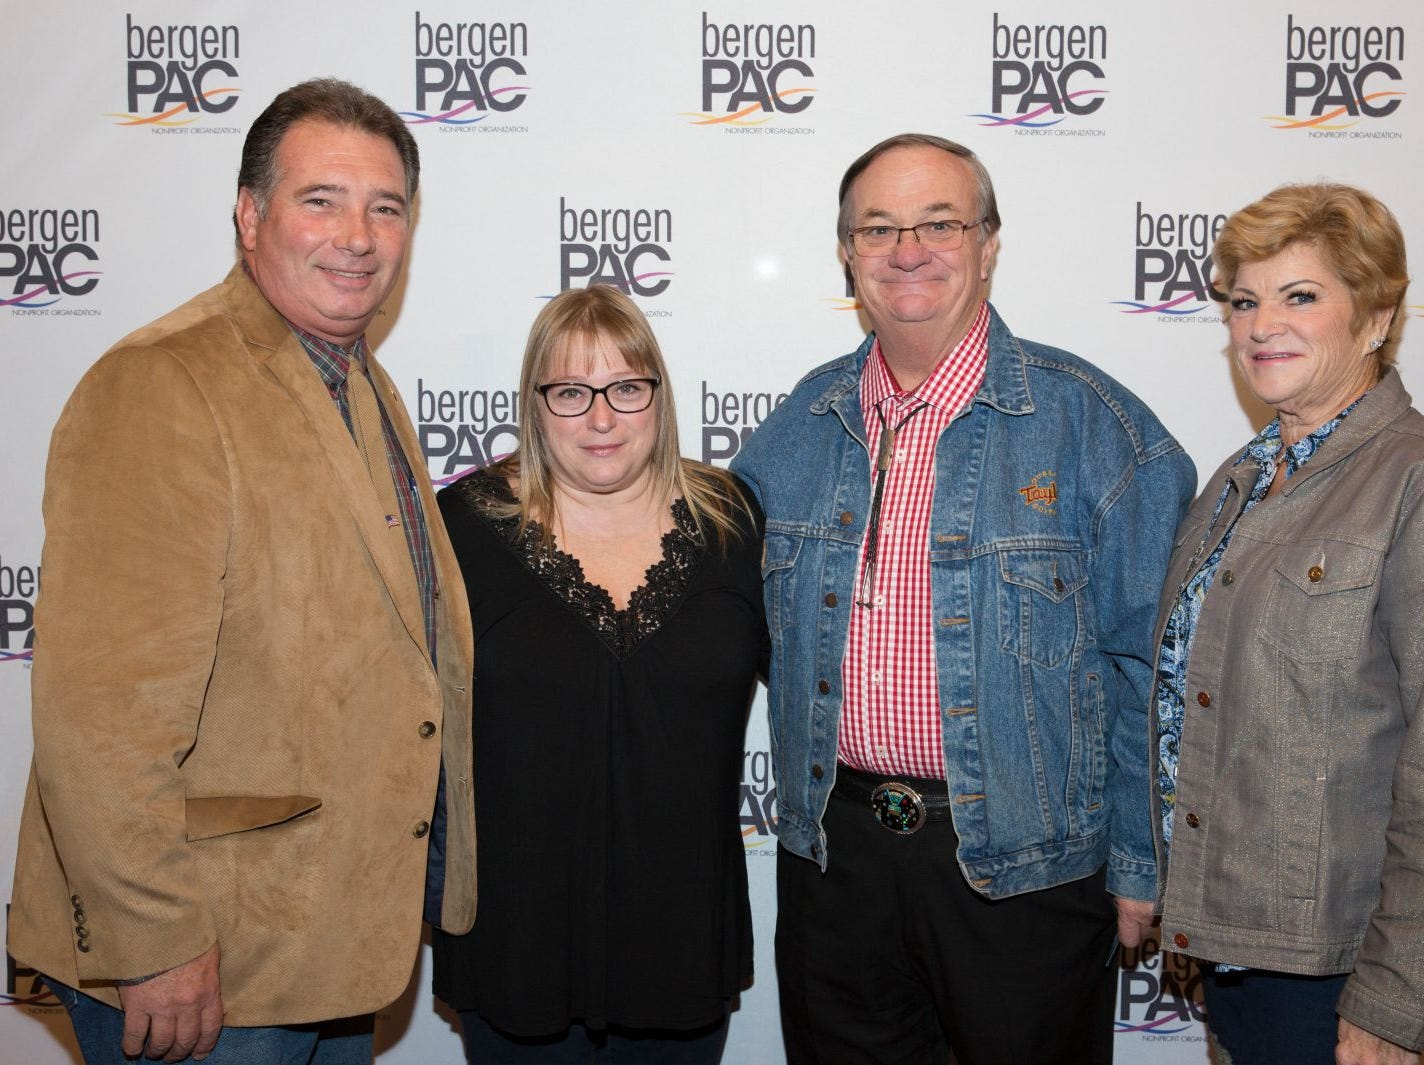 David and Susan Hollaneck, Rich and Aleta Taylor. BergenPAC held its annual fall gala featuring John Fogerty in Englewood. This year's honoree was Fernando Garip, from Wilmington Trust and M&T Bank. 11/08/2018